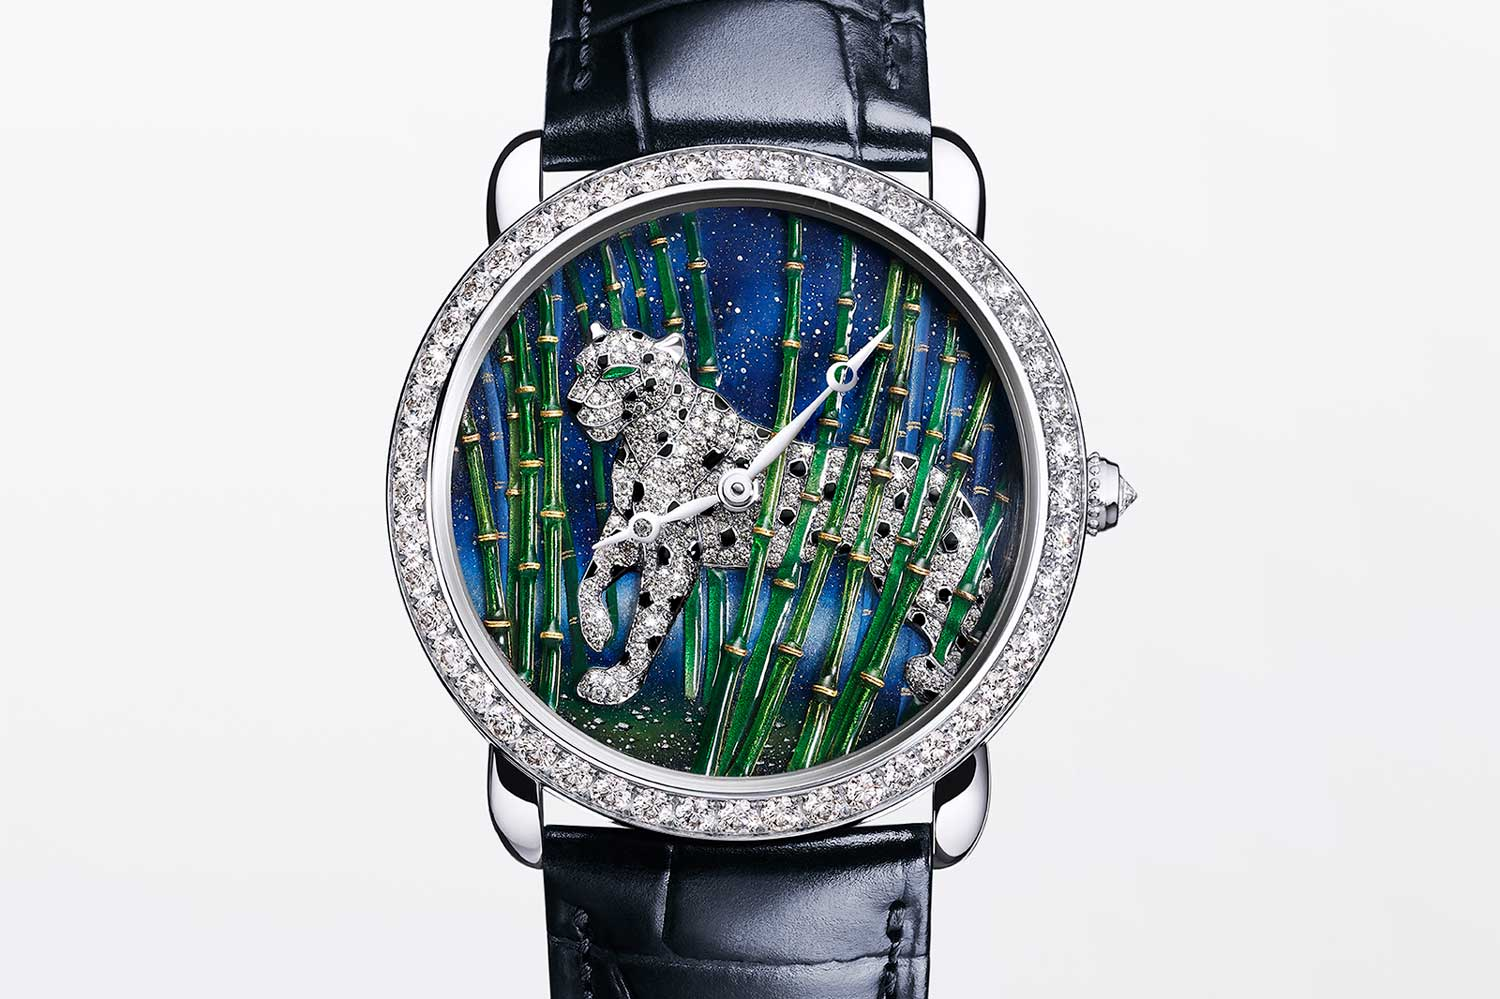 The Ronde Louis Cartier Enamel Filigree combines the techniques of enameling with gold filigree.